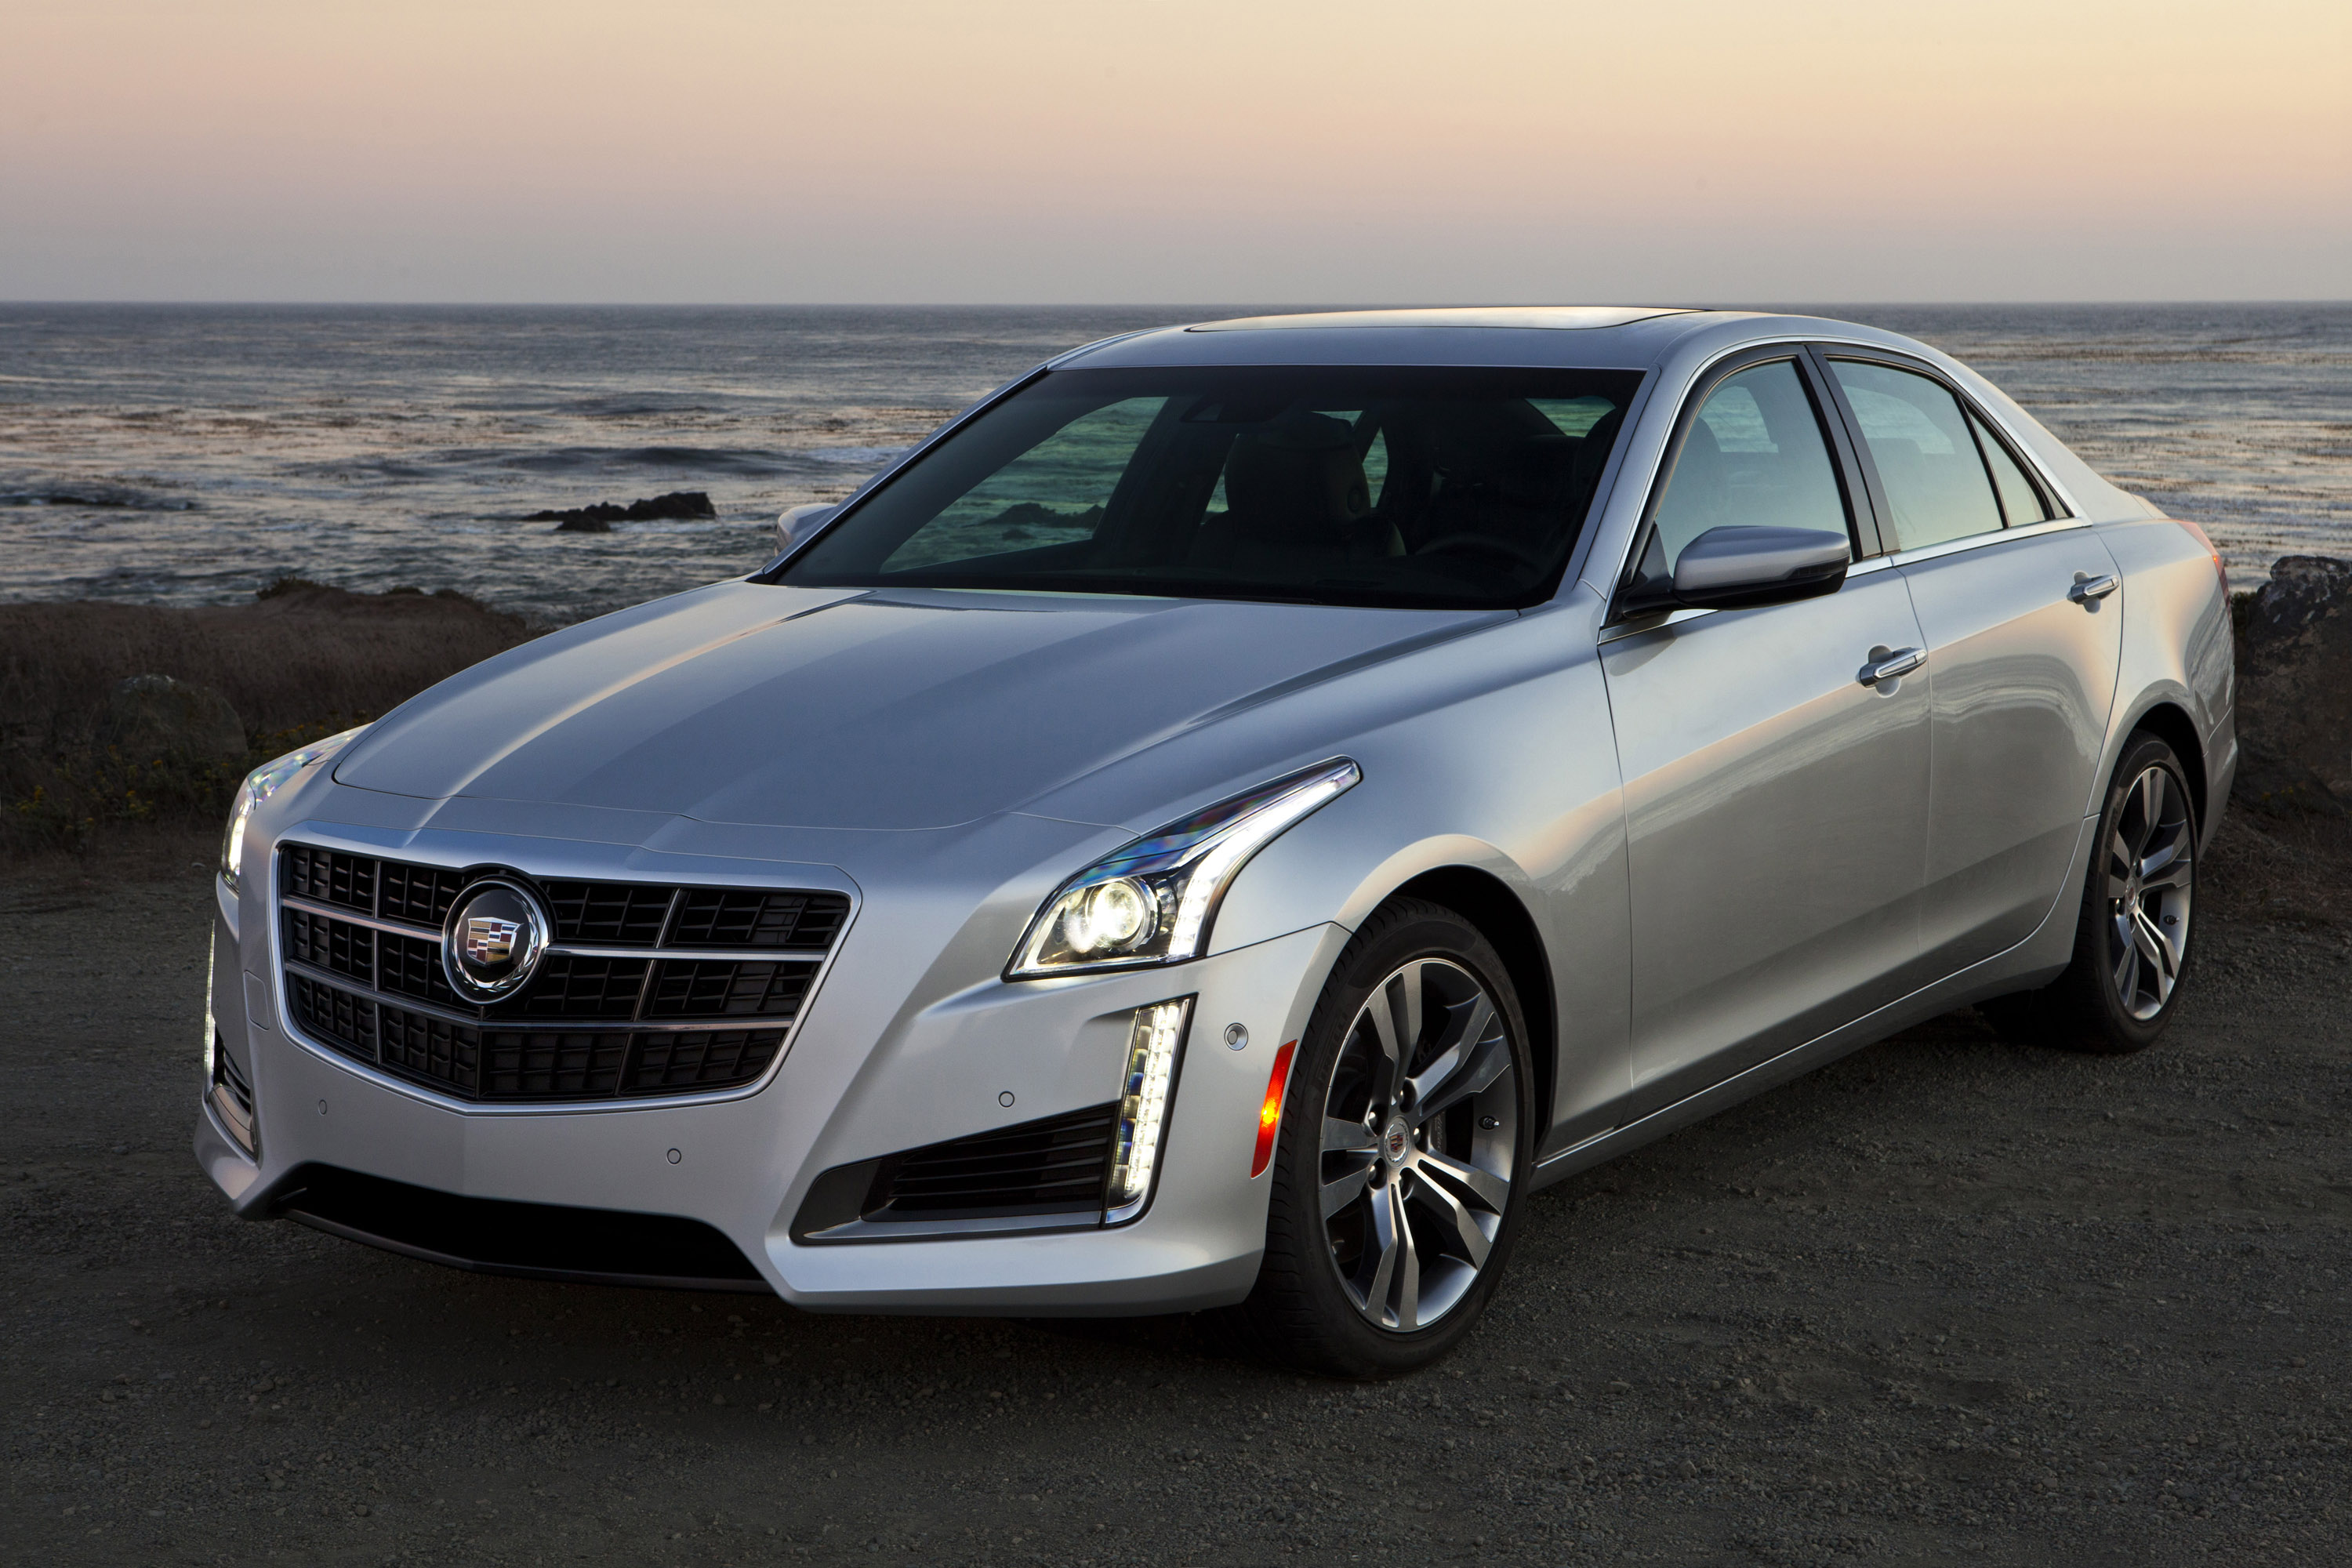 cadillac cts named 2014 car and driver 10 best